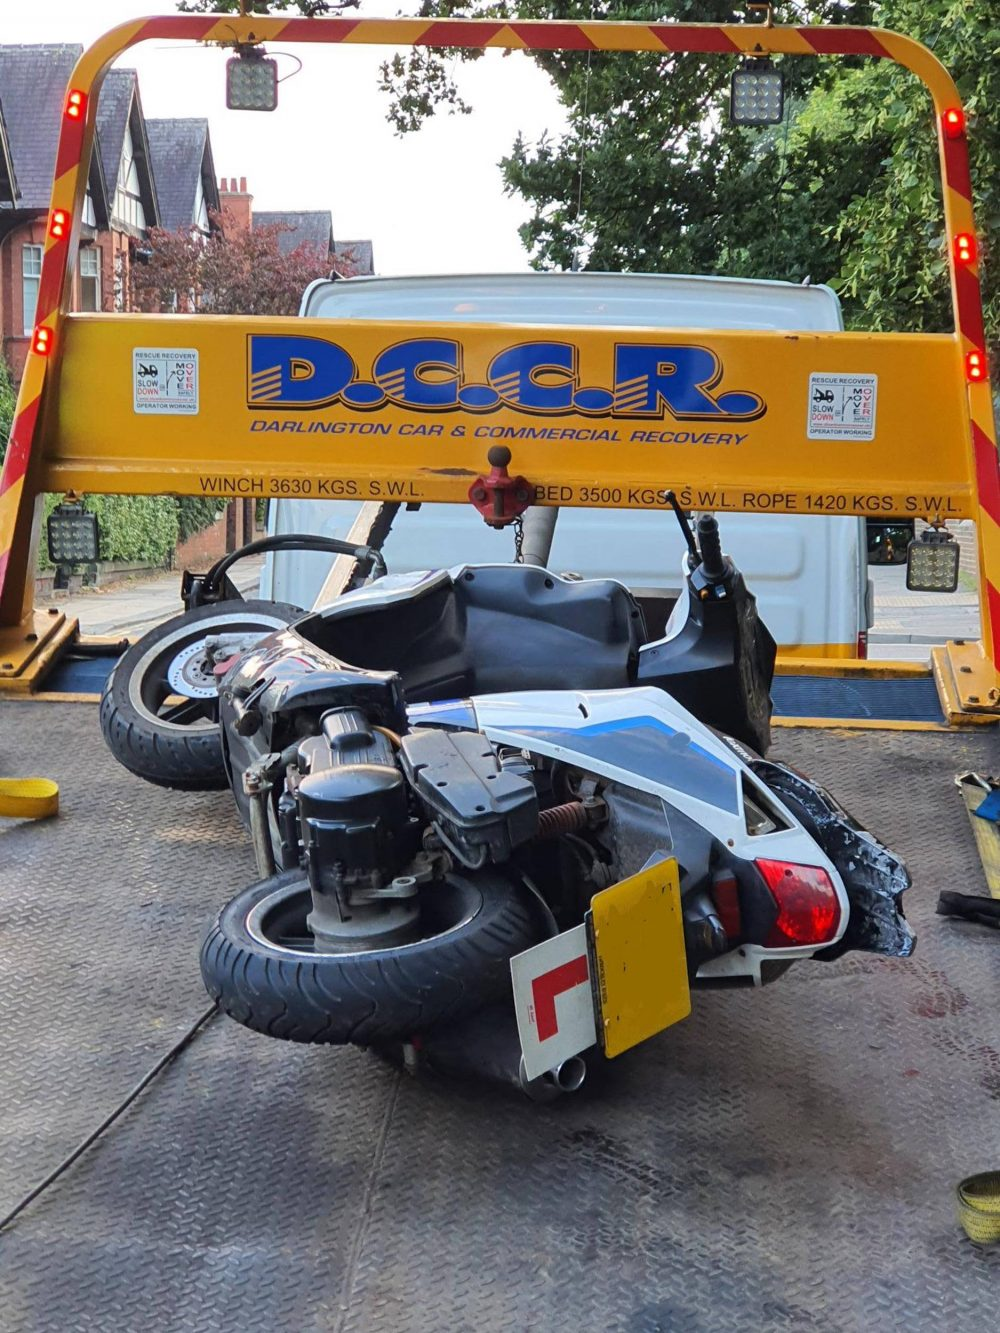 The seized moped on the recovery truck | Traffic News UK